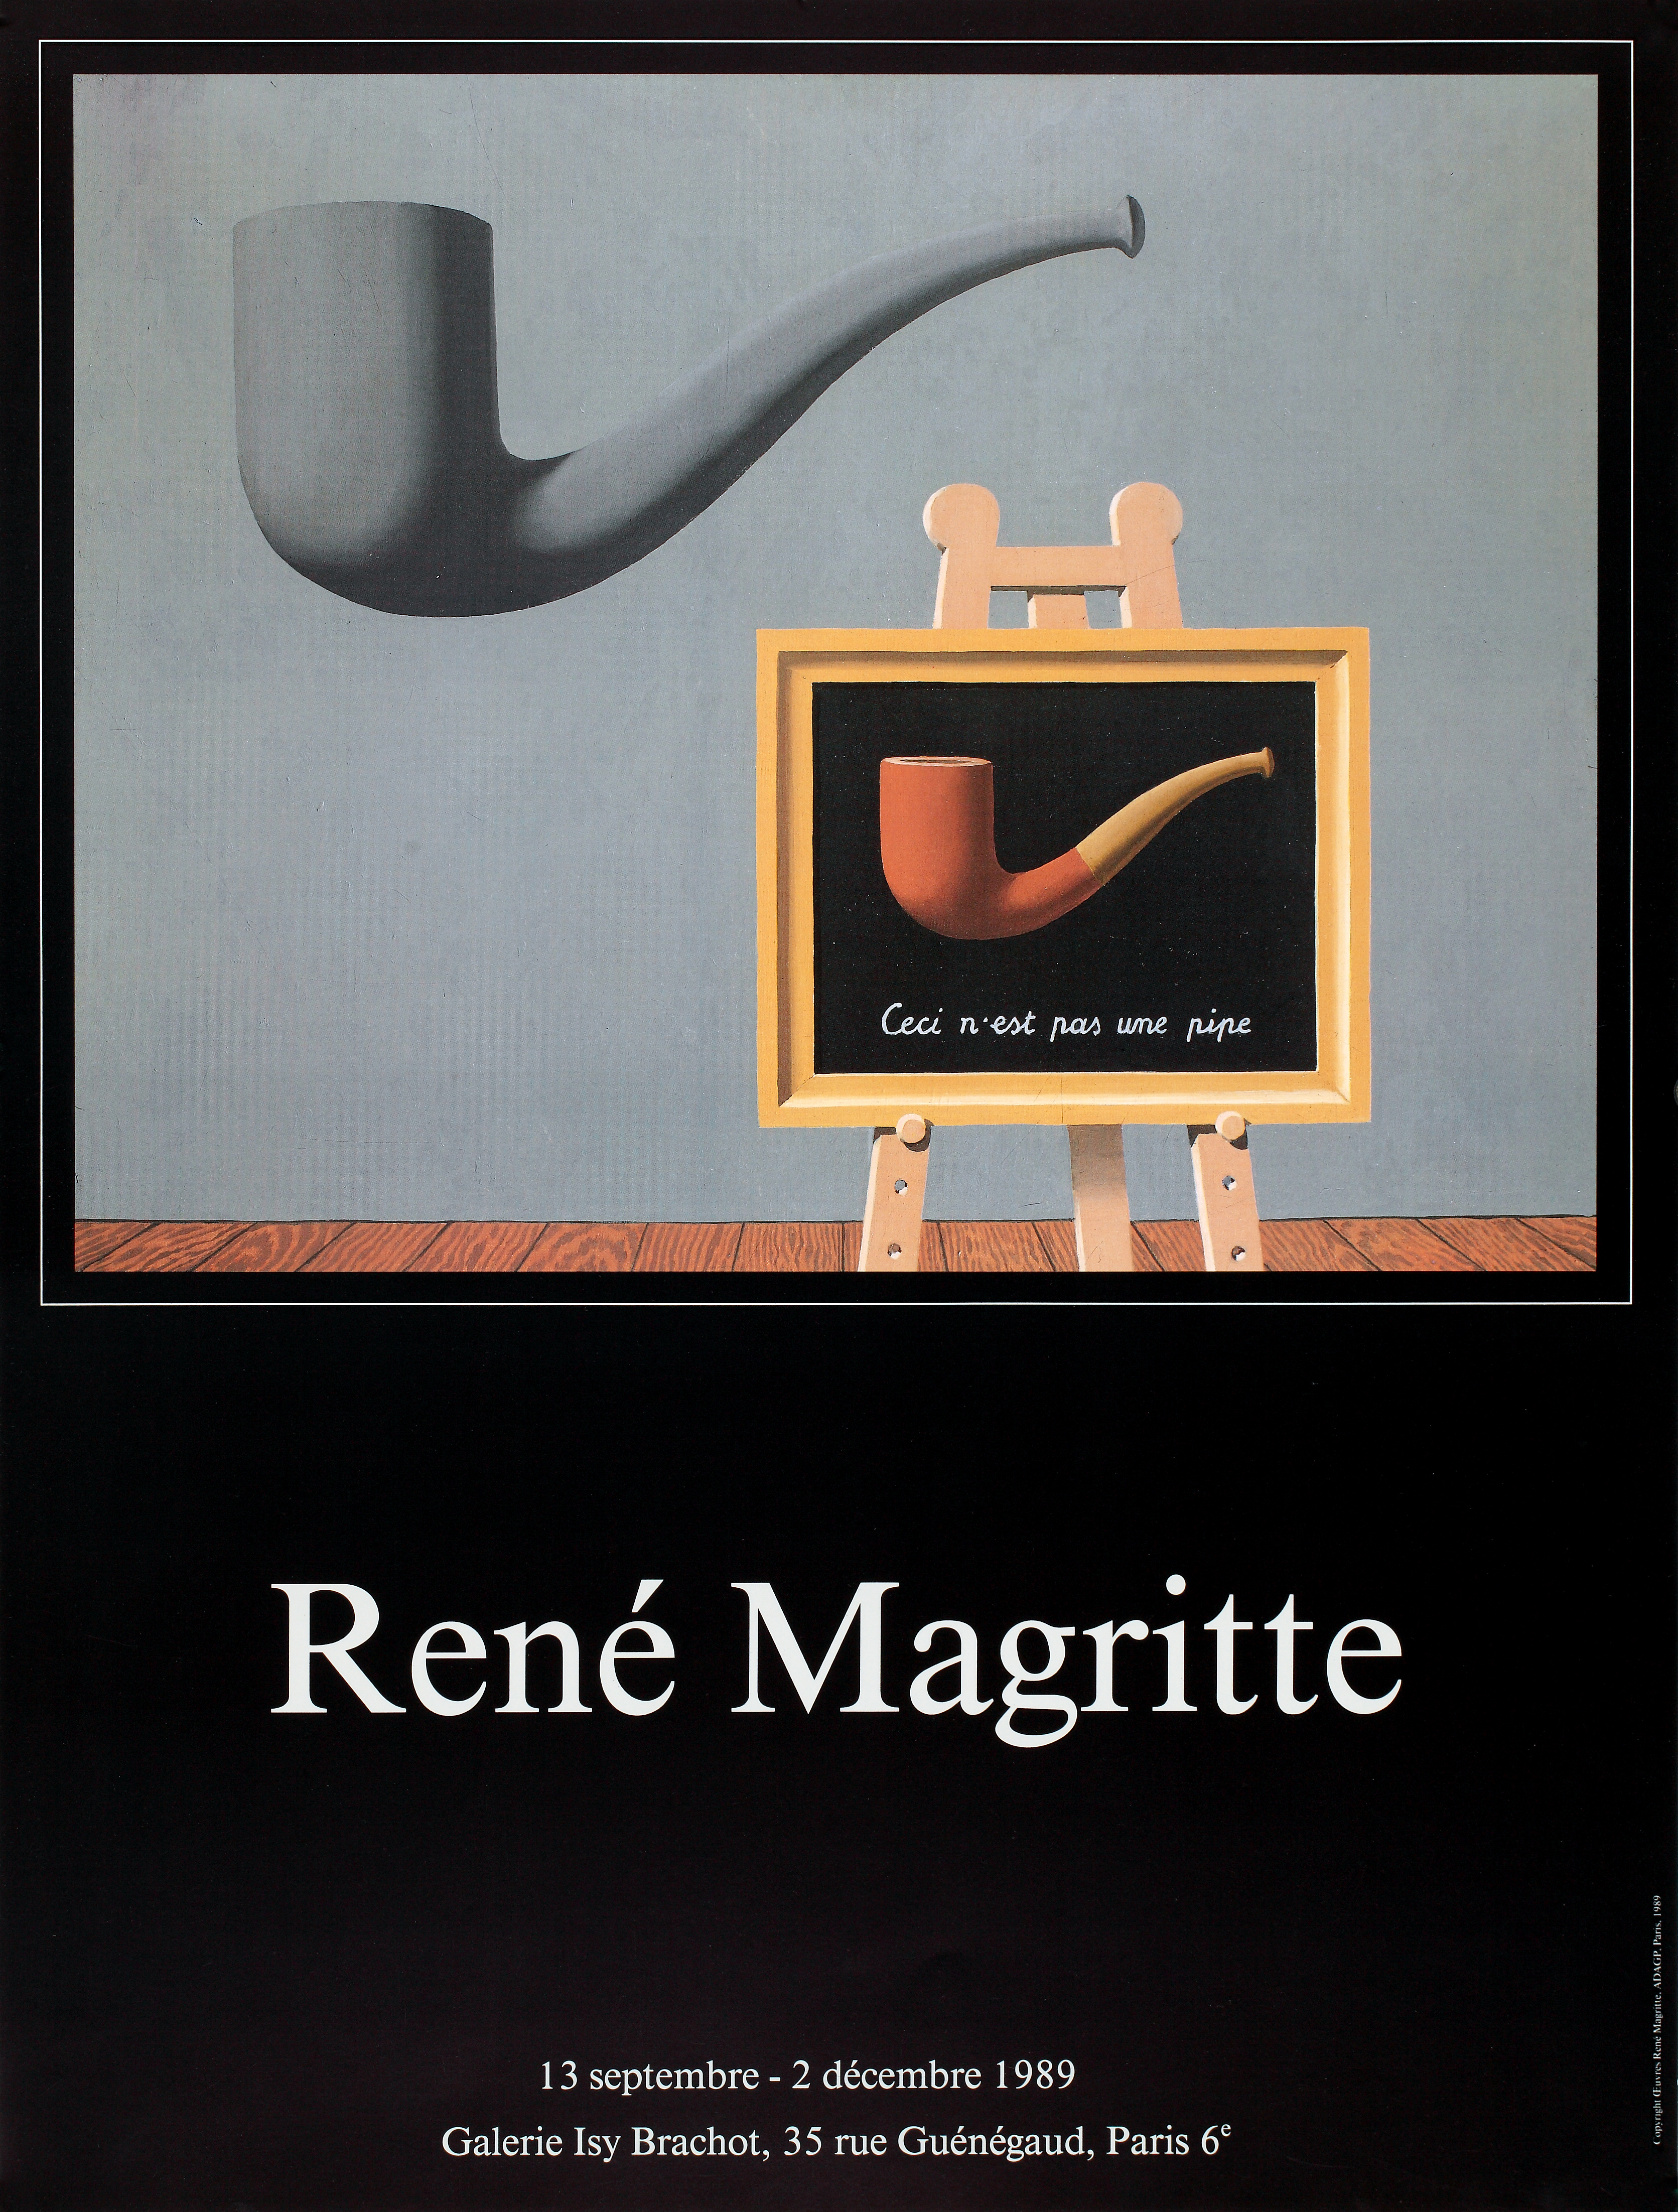 Expo Magritte Galerie Isy Brachot